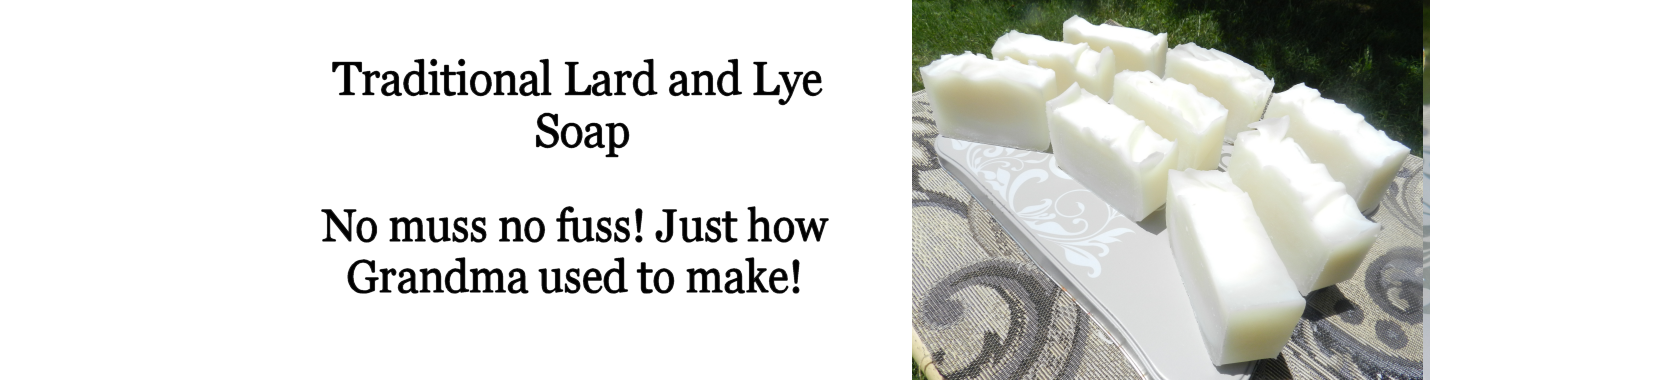 Lard and Lye Soap. Traditional Plain Lard and Lye Soap